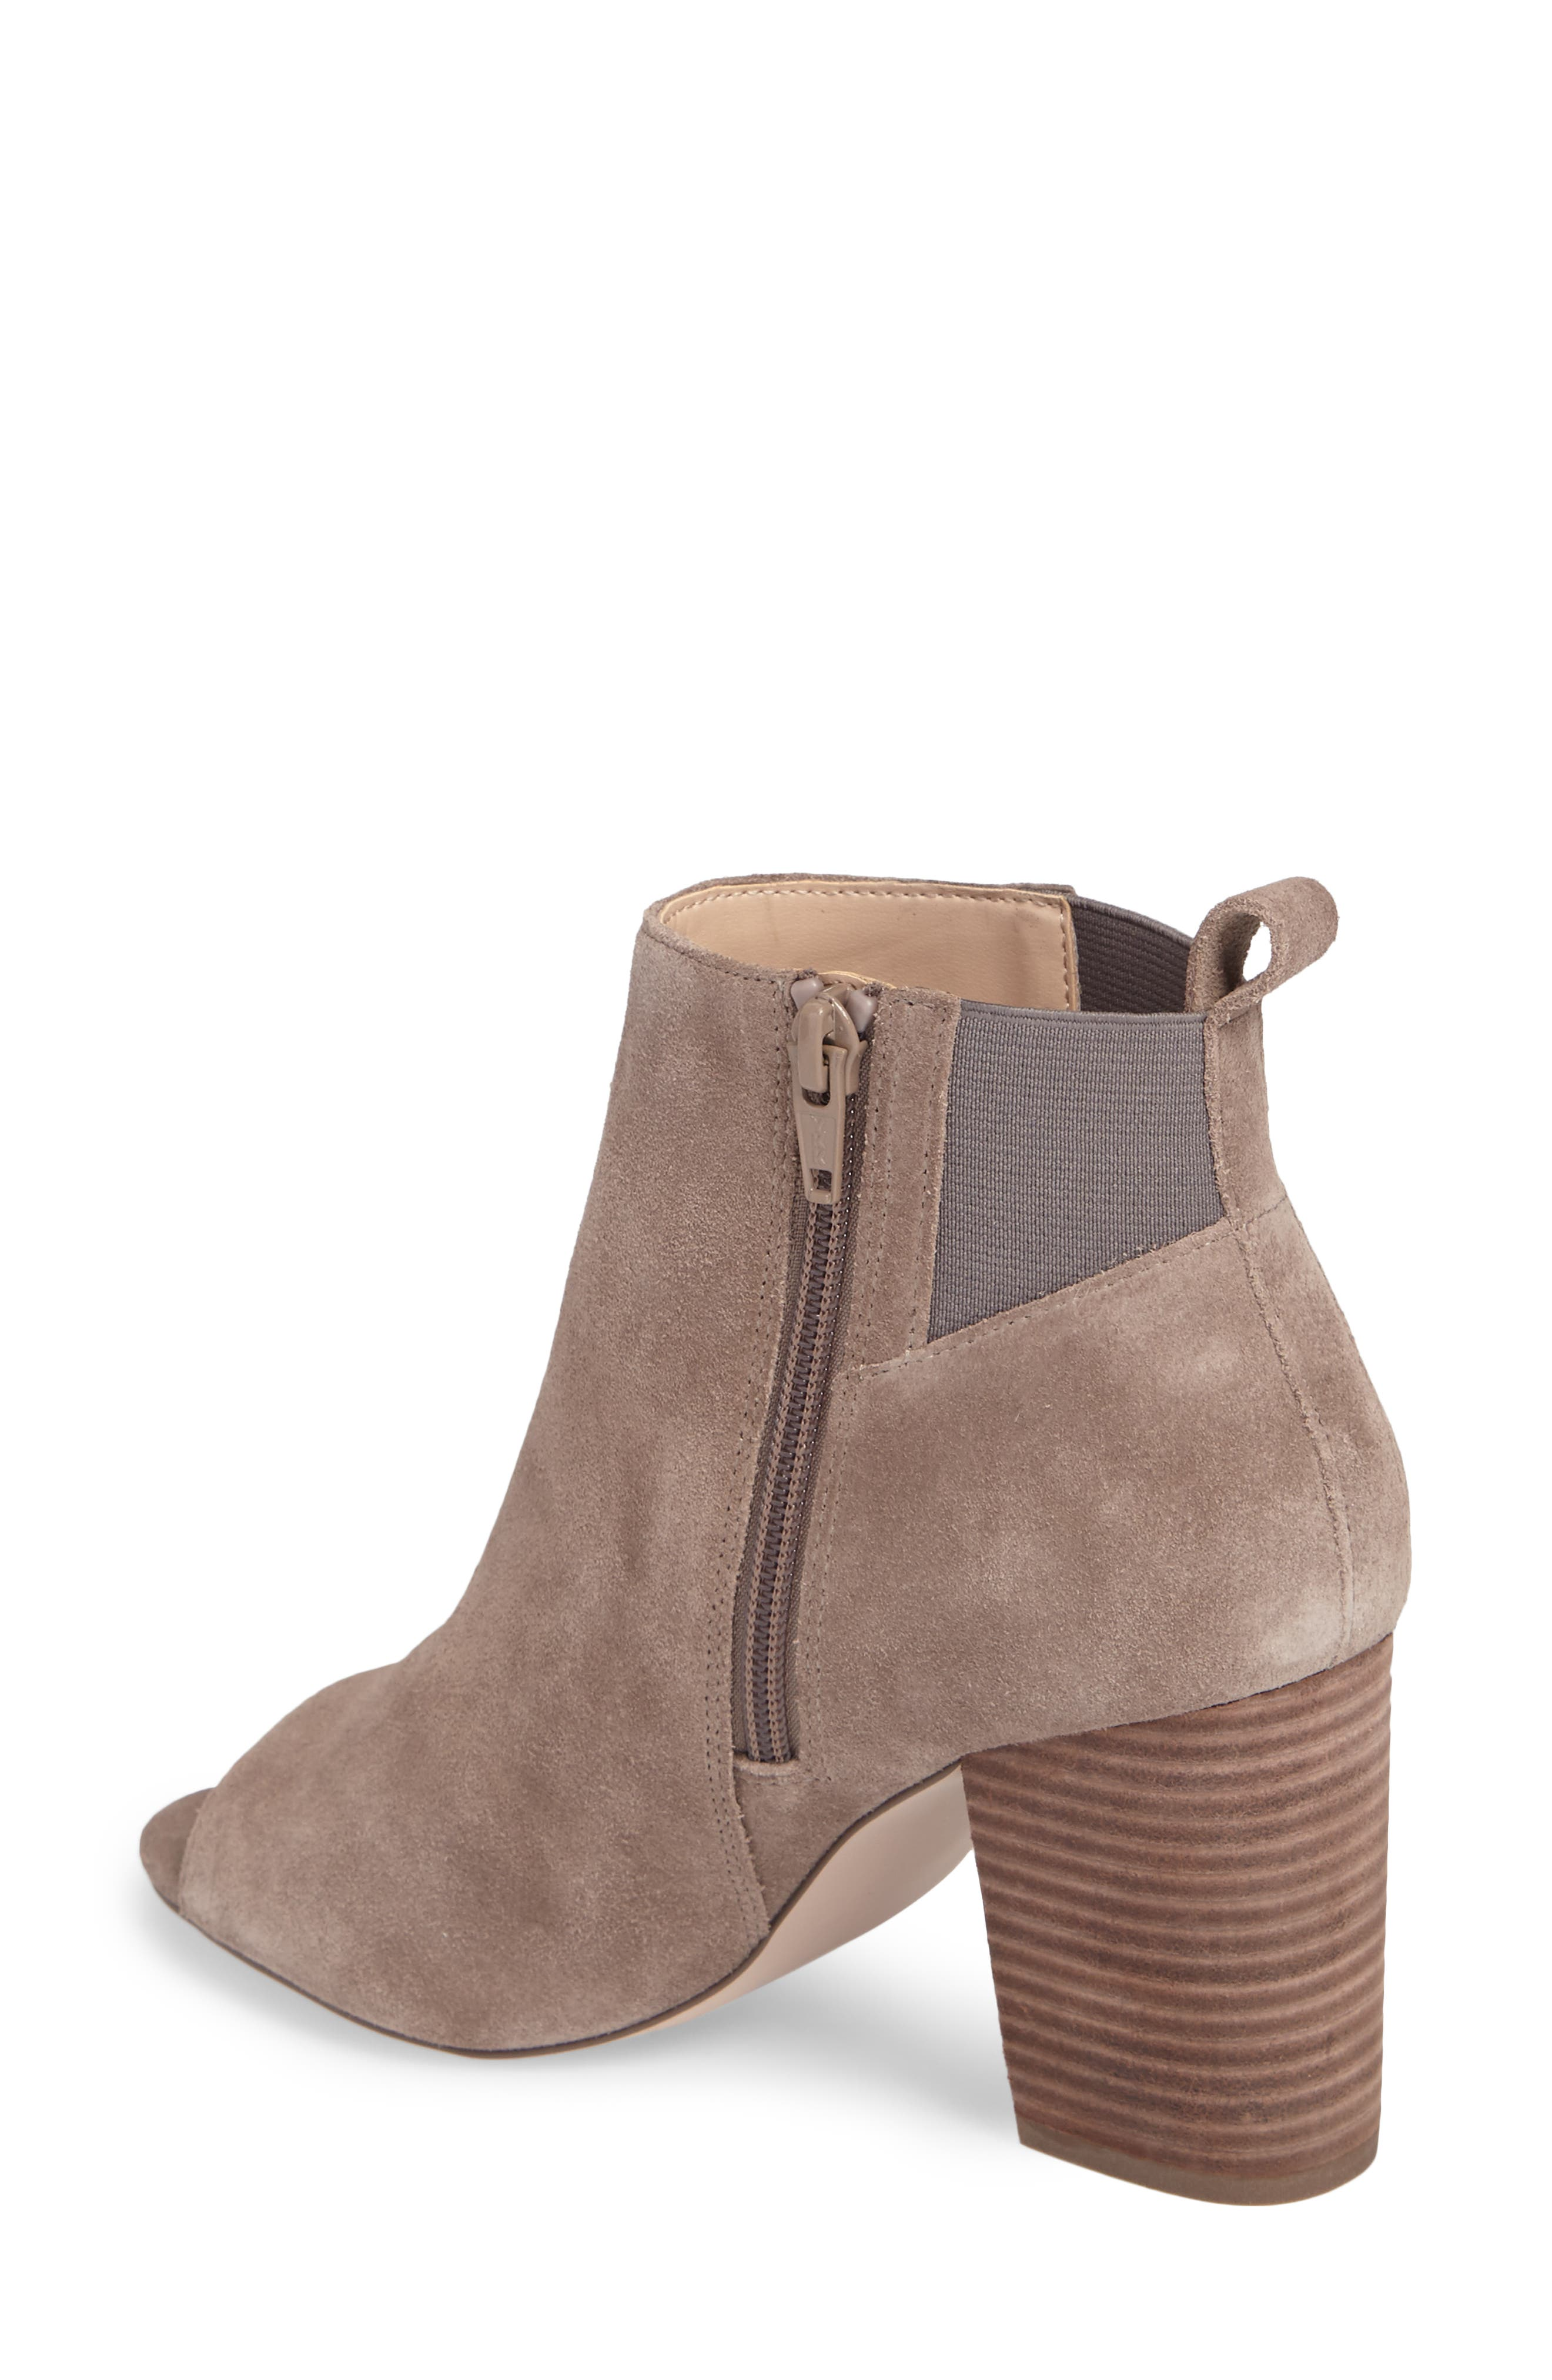 Vita Peep Toe Bootie,                             Alternate thumbnail 2, color,                             Mushroom Suede